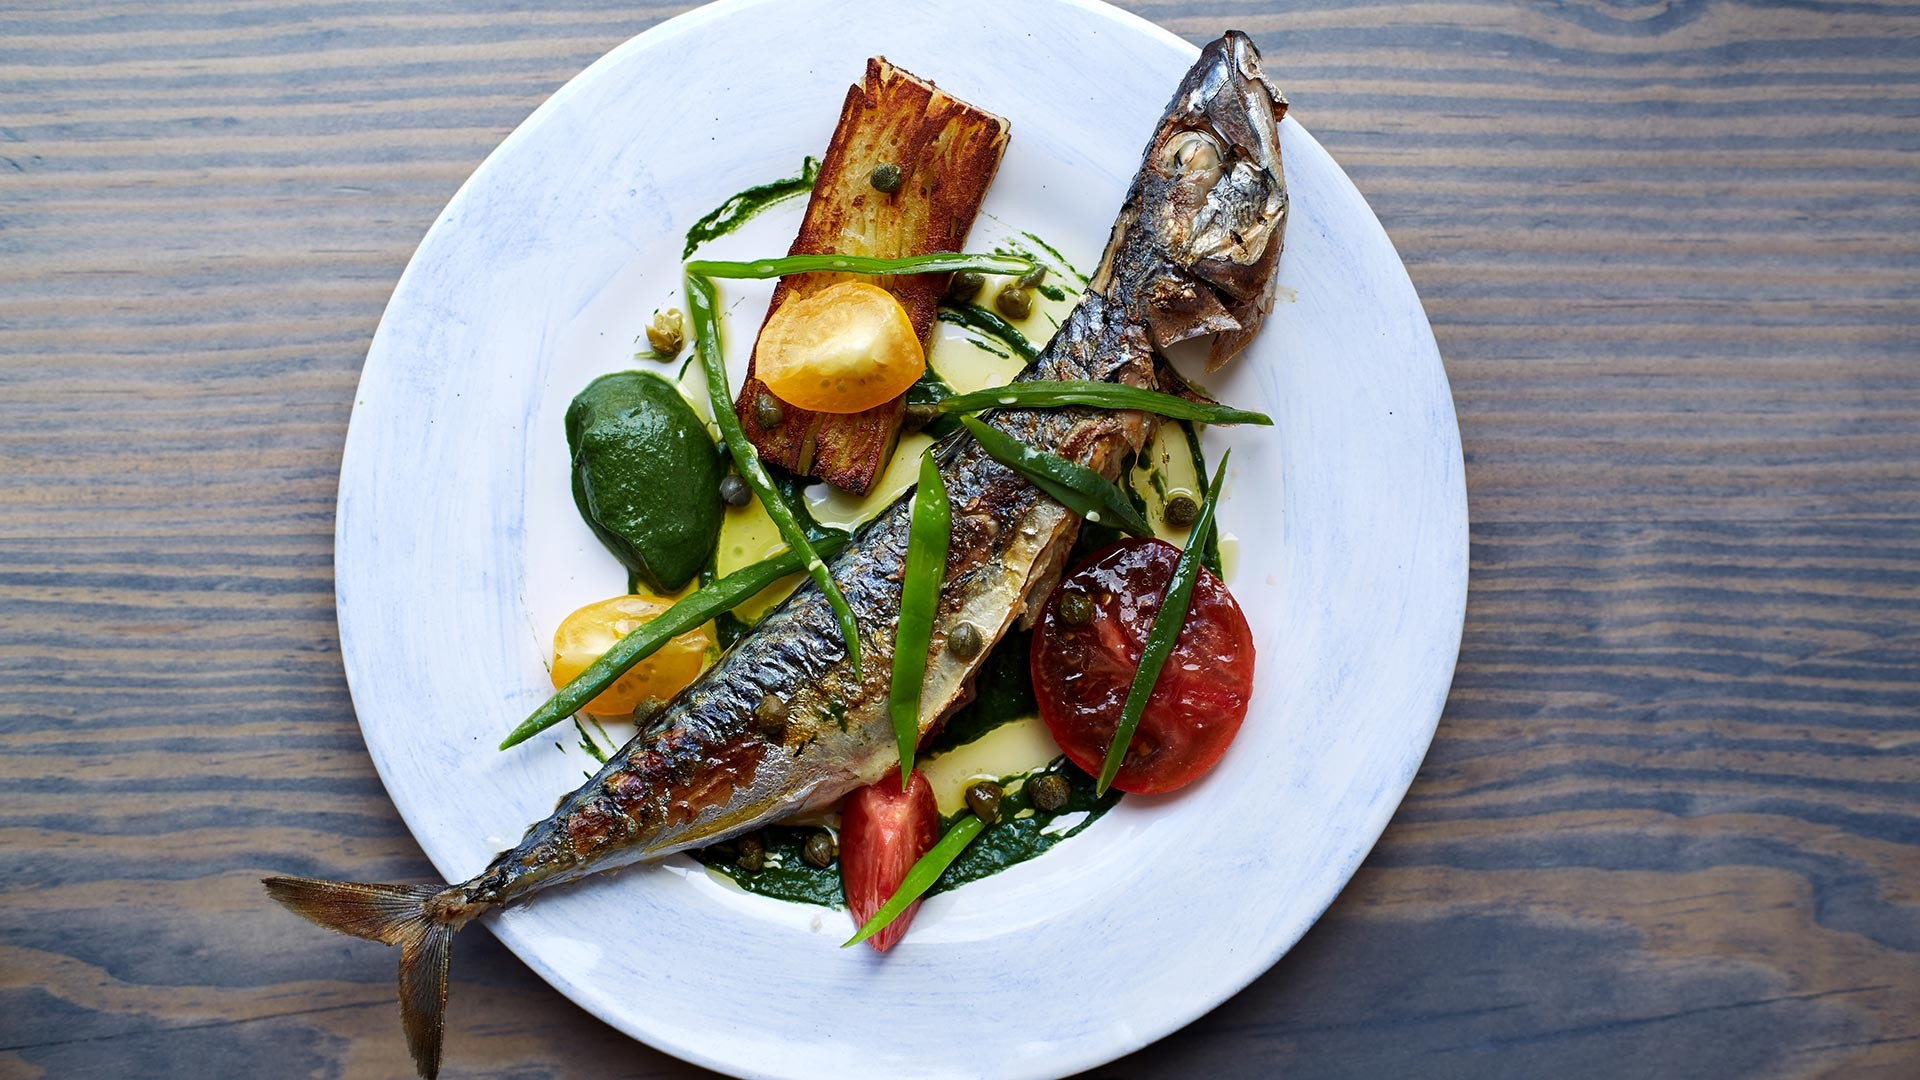 Whole mackerel with tomatoes at Marcella, one of Deptford's best restaurants